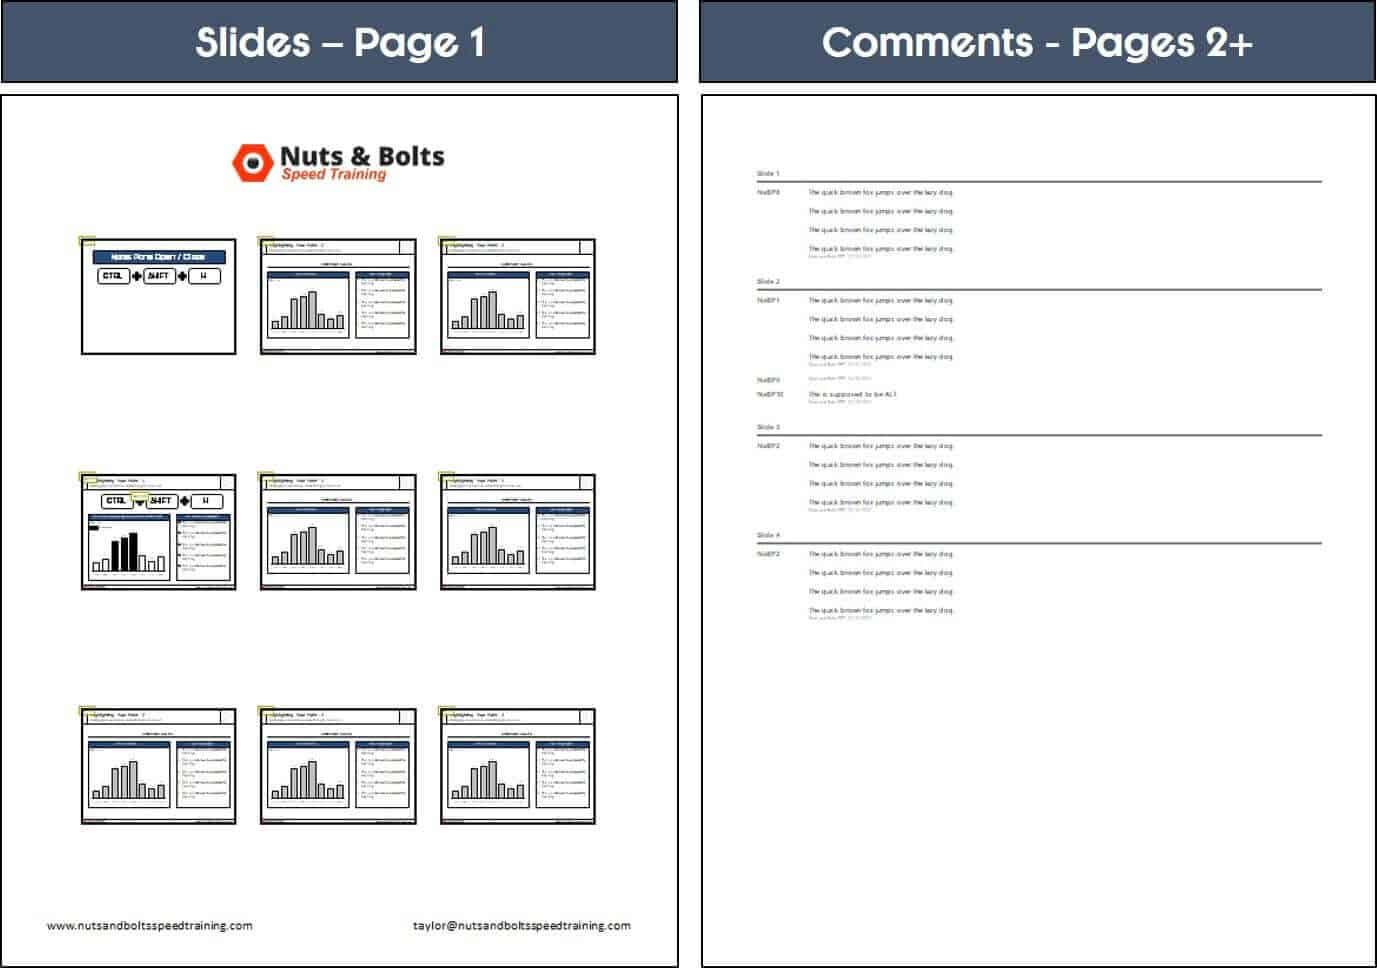 PowerPoint comments on second notes page